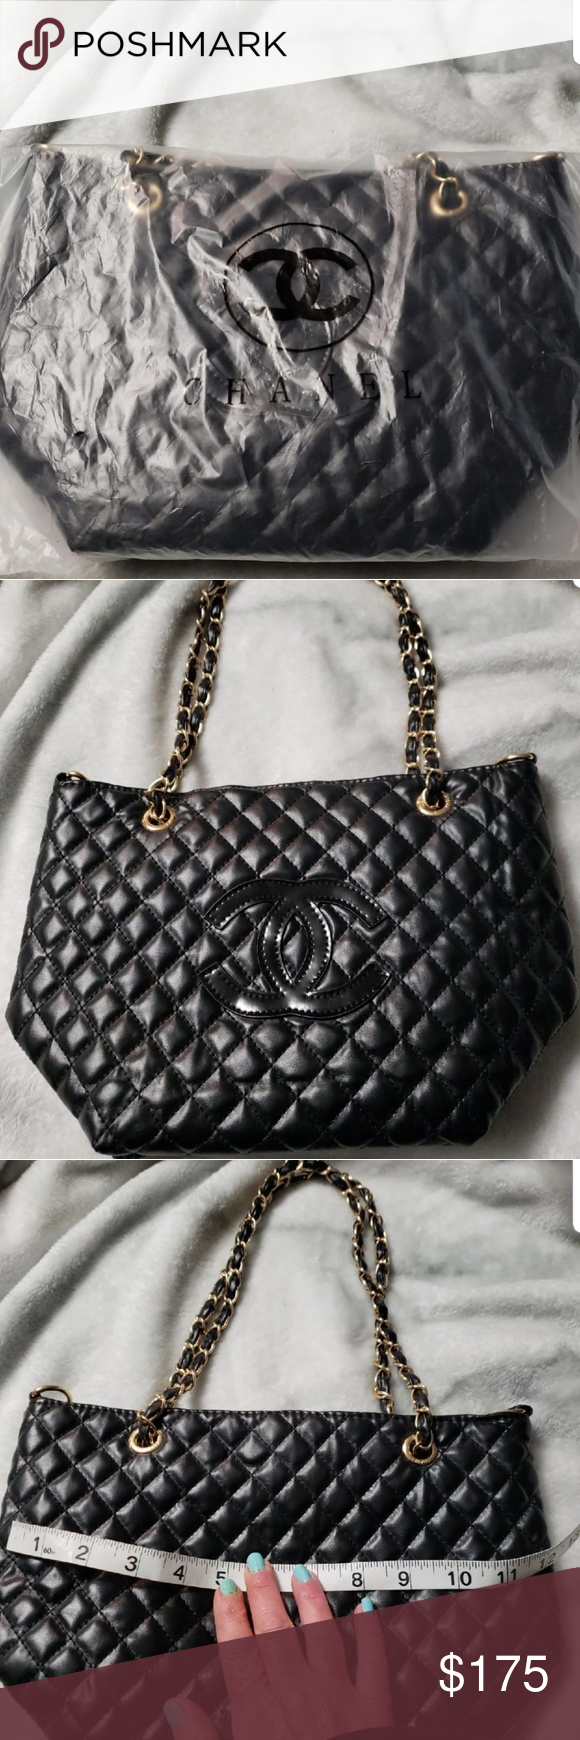 c750013ec99c11 Chanel VIP Gift bag Precision makeup VIP gift! Beautiful black with gold  accents. Also has an extra strap. Only opened for pics. CHANEL Bags  Shoulder Bags